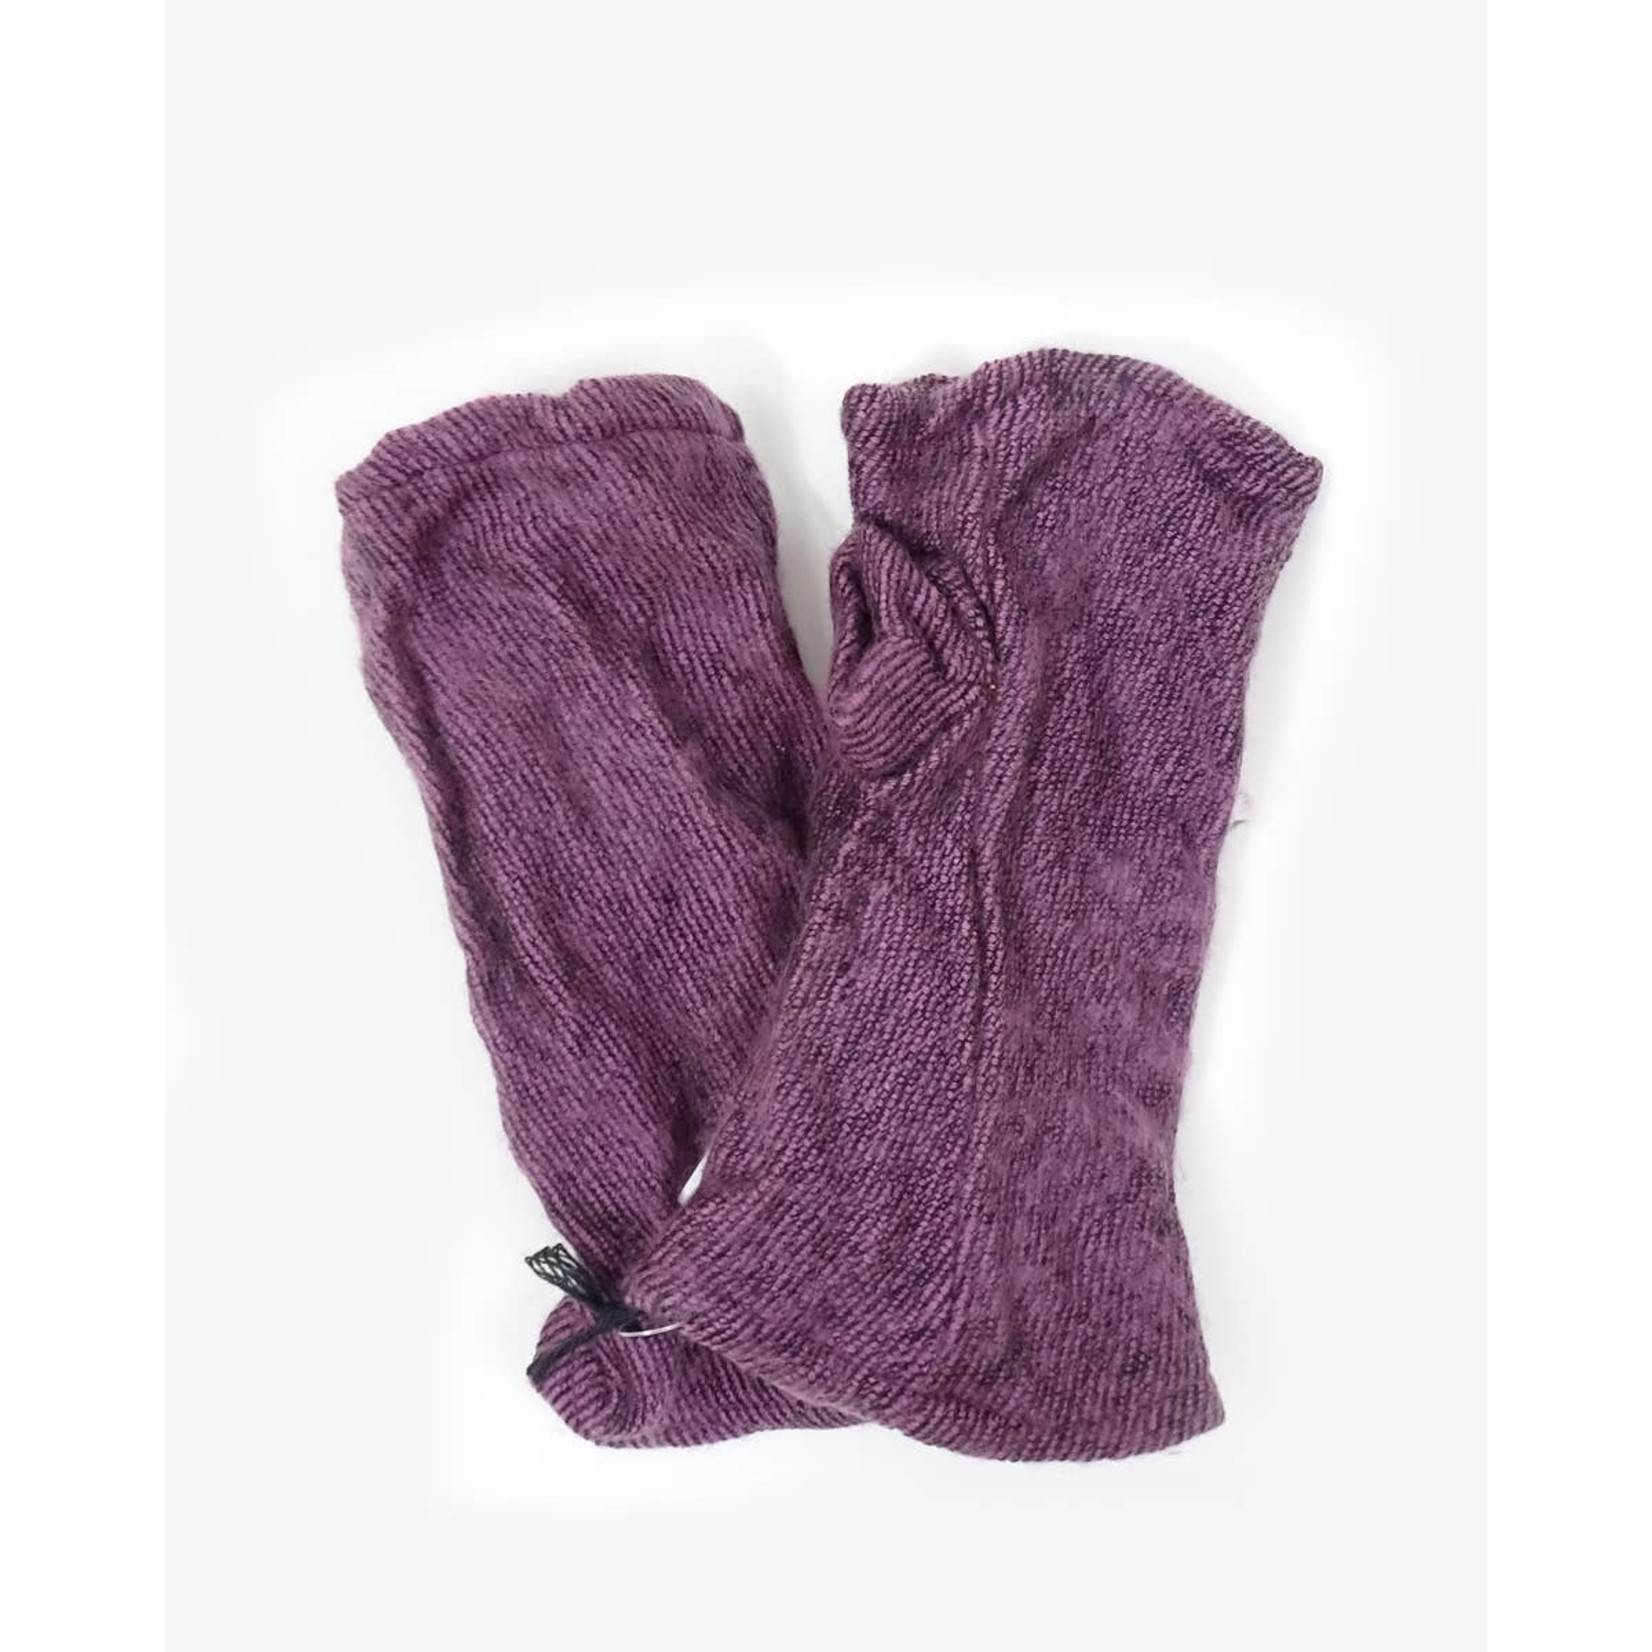 Zig Zag Asian Brushed Woven Fingerless Gloves in Lilac